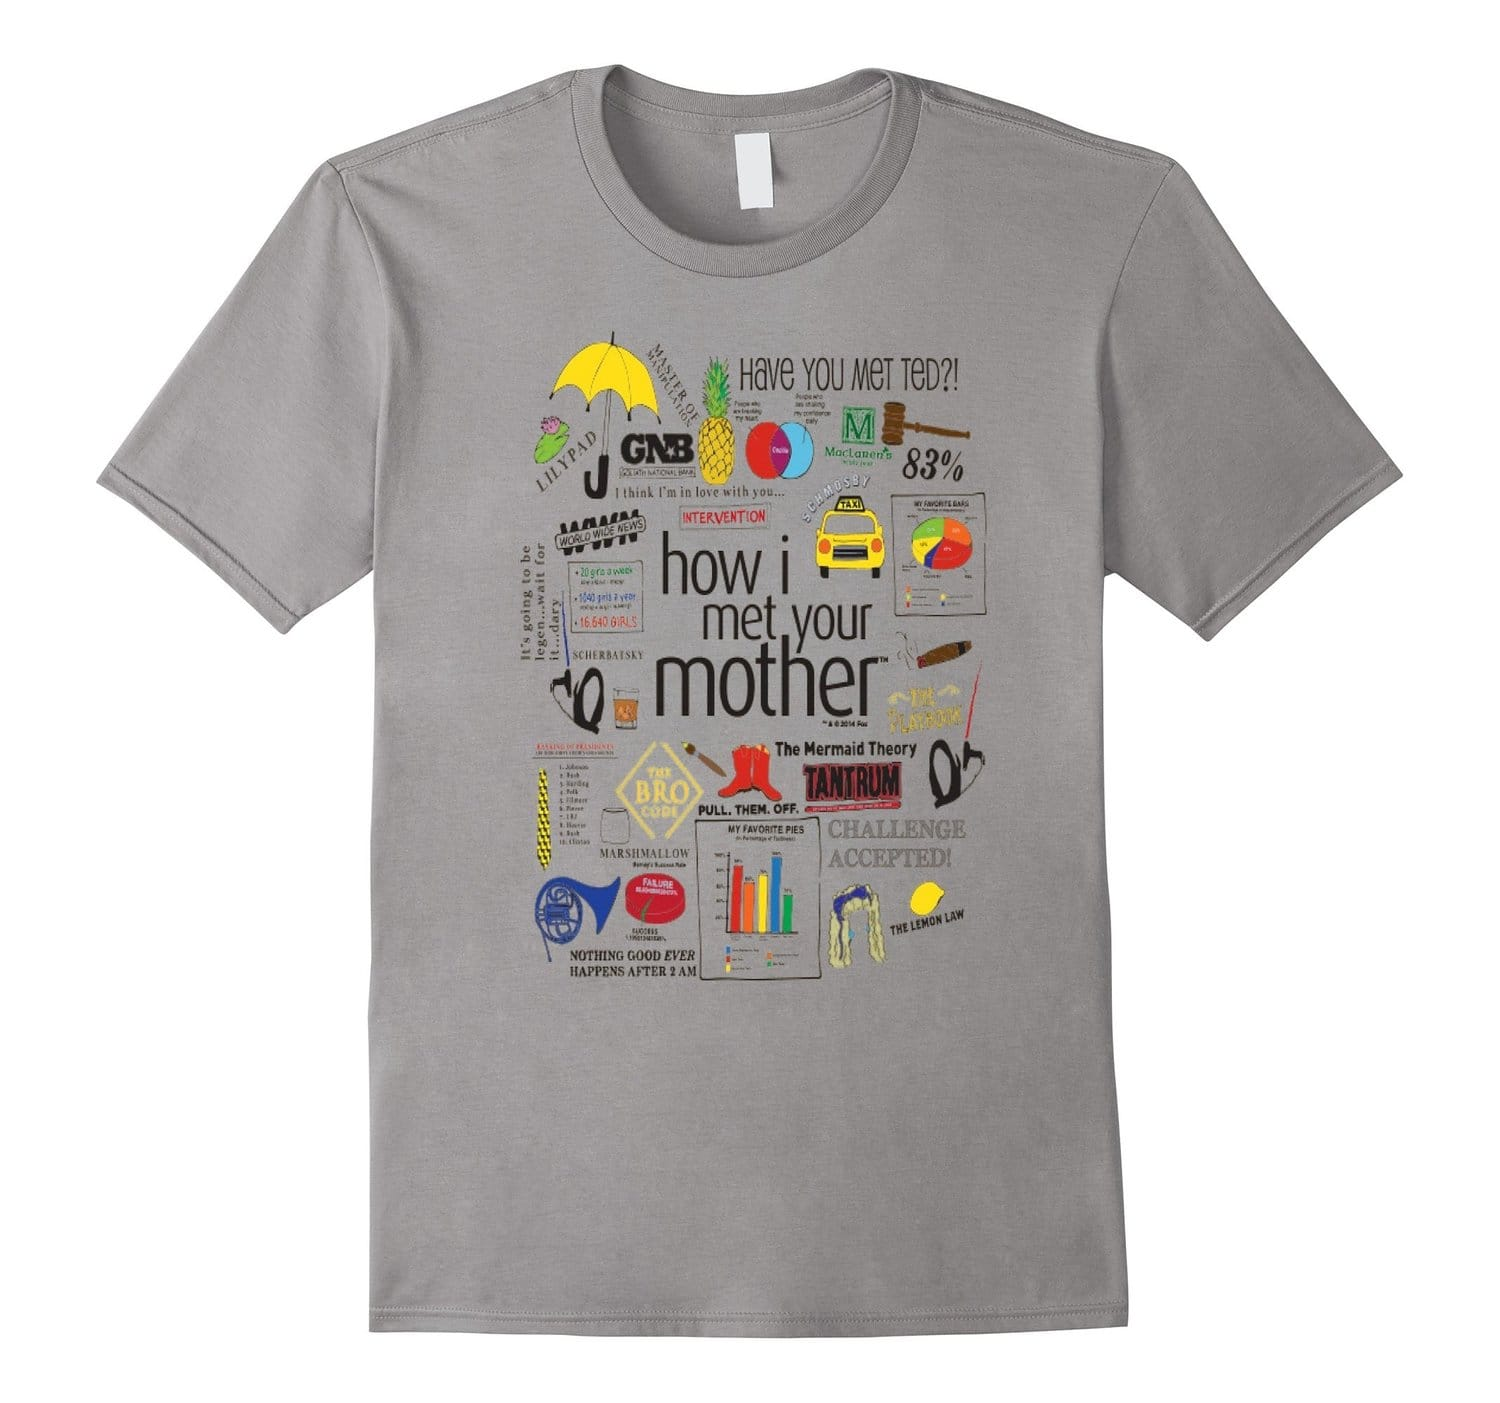 How I Met Your Mother Unisex Quote Mashup Shirt summer 2016